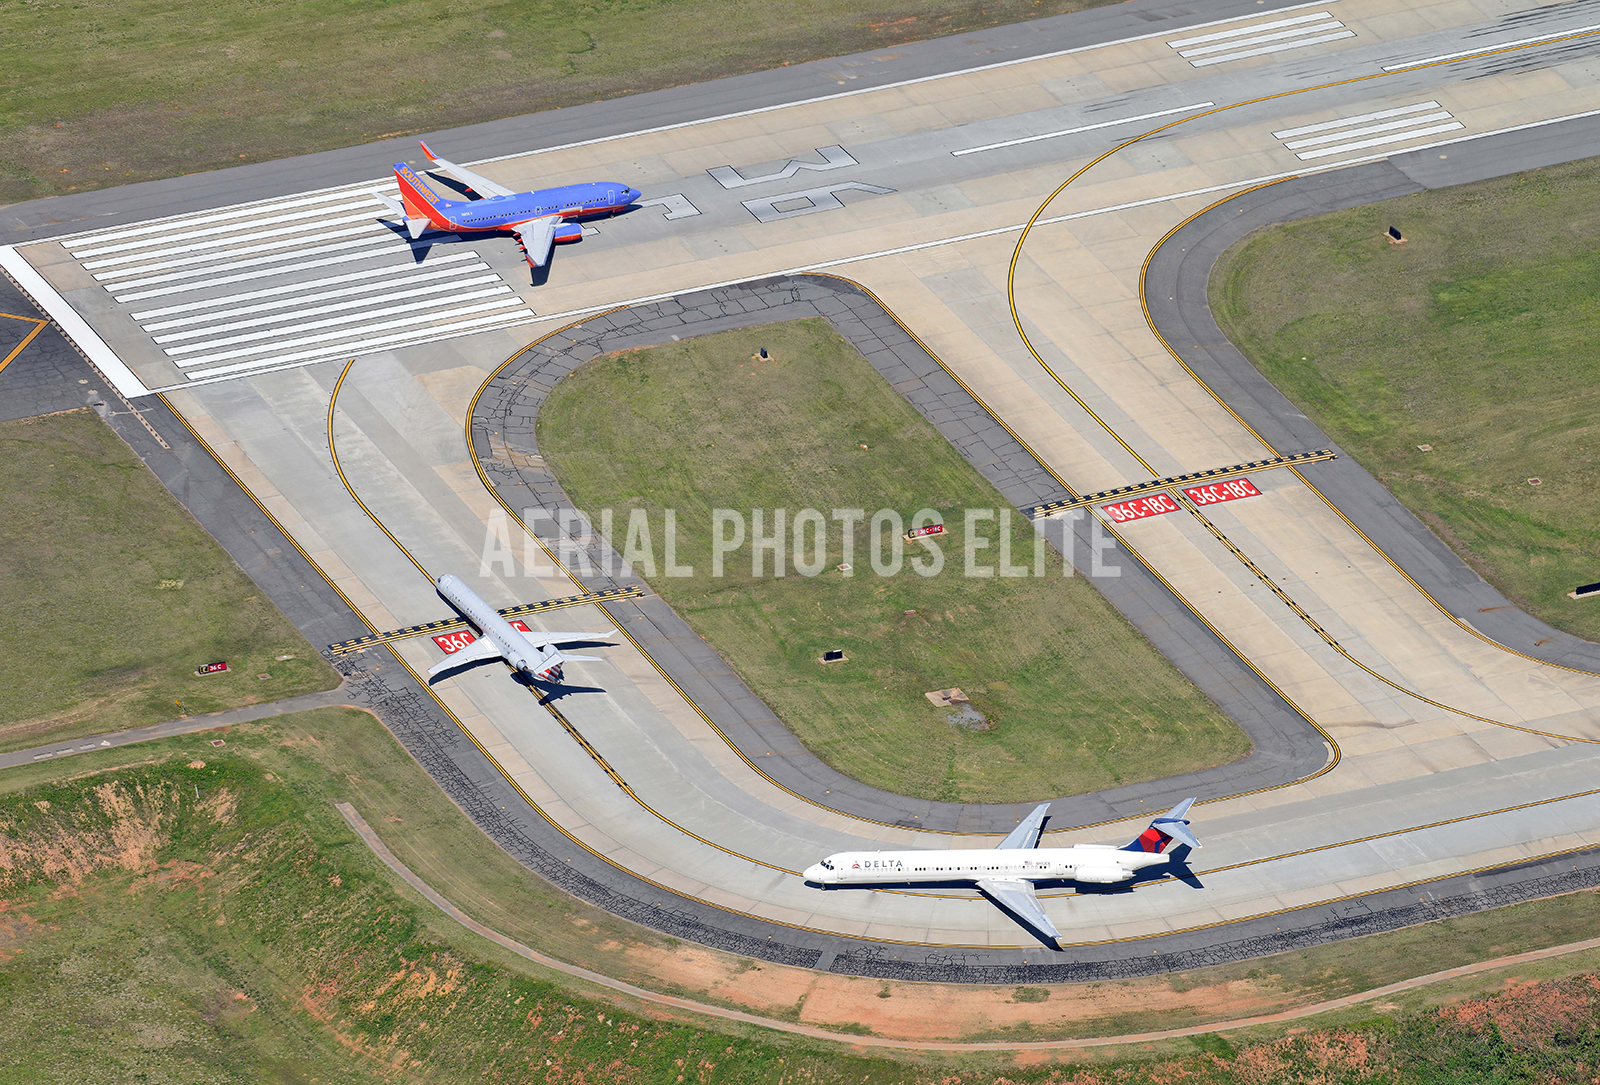 Southwest American Airlines Delta Charlotte Douglas International Airport | Aerial Photos Elite